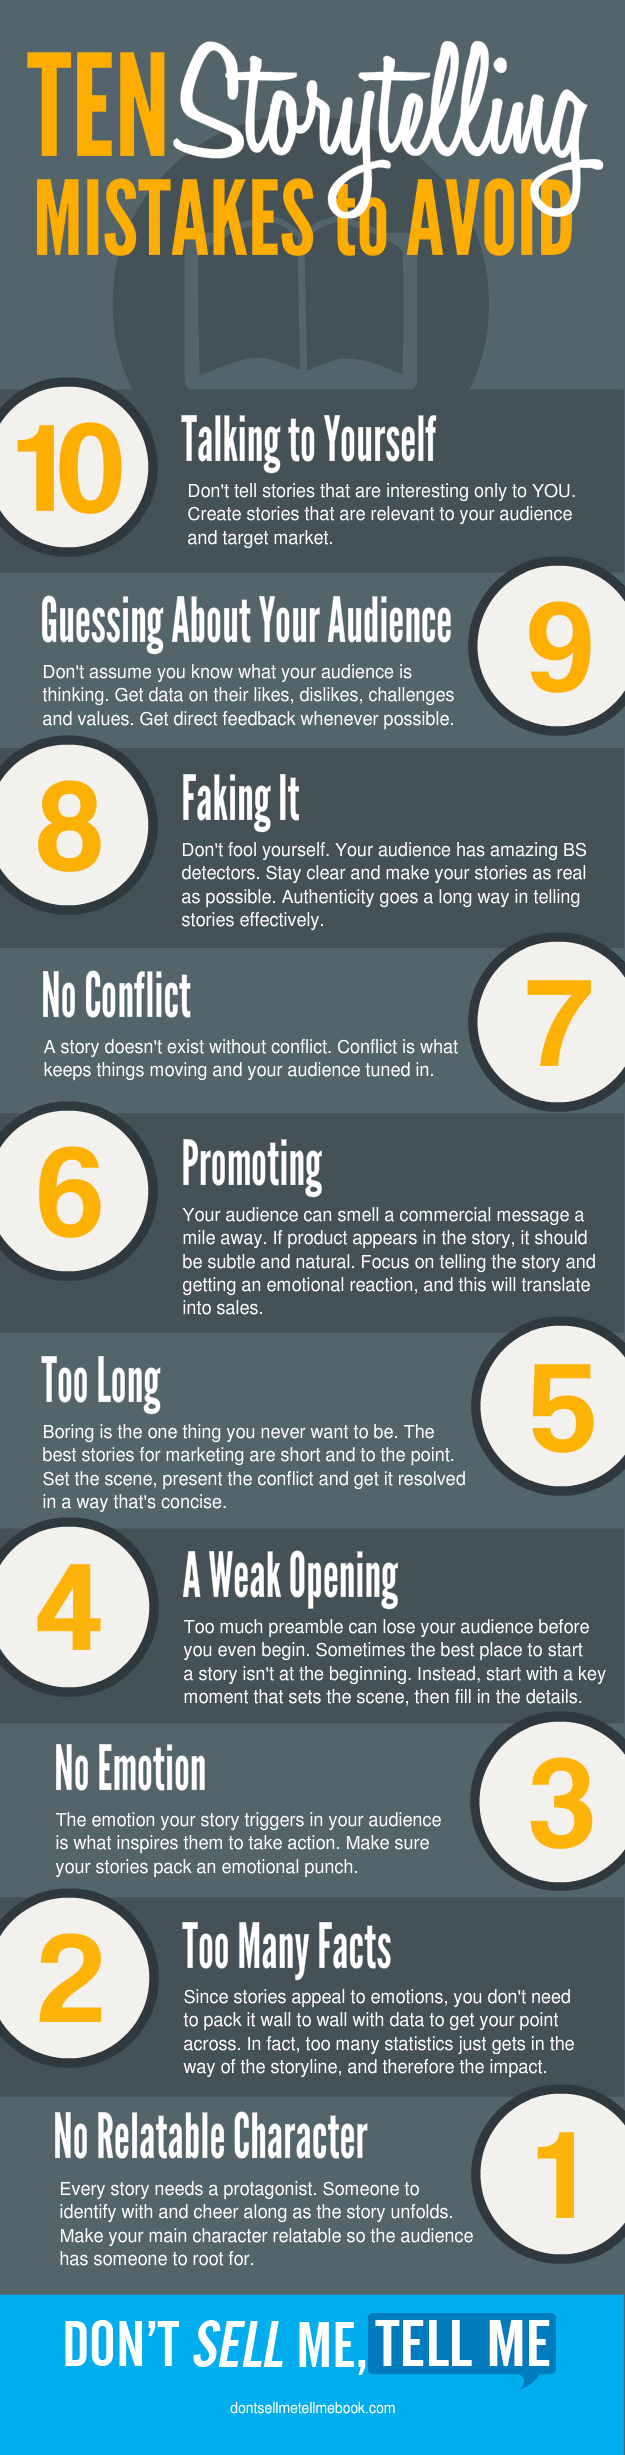 10 Storytelling Mistakes to Avoid